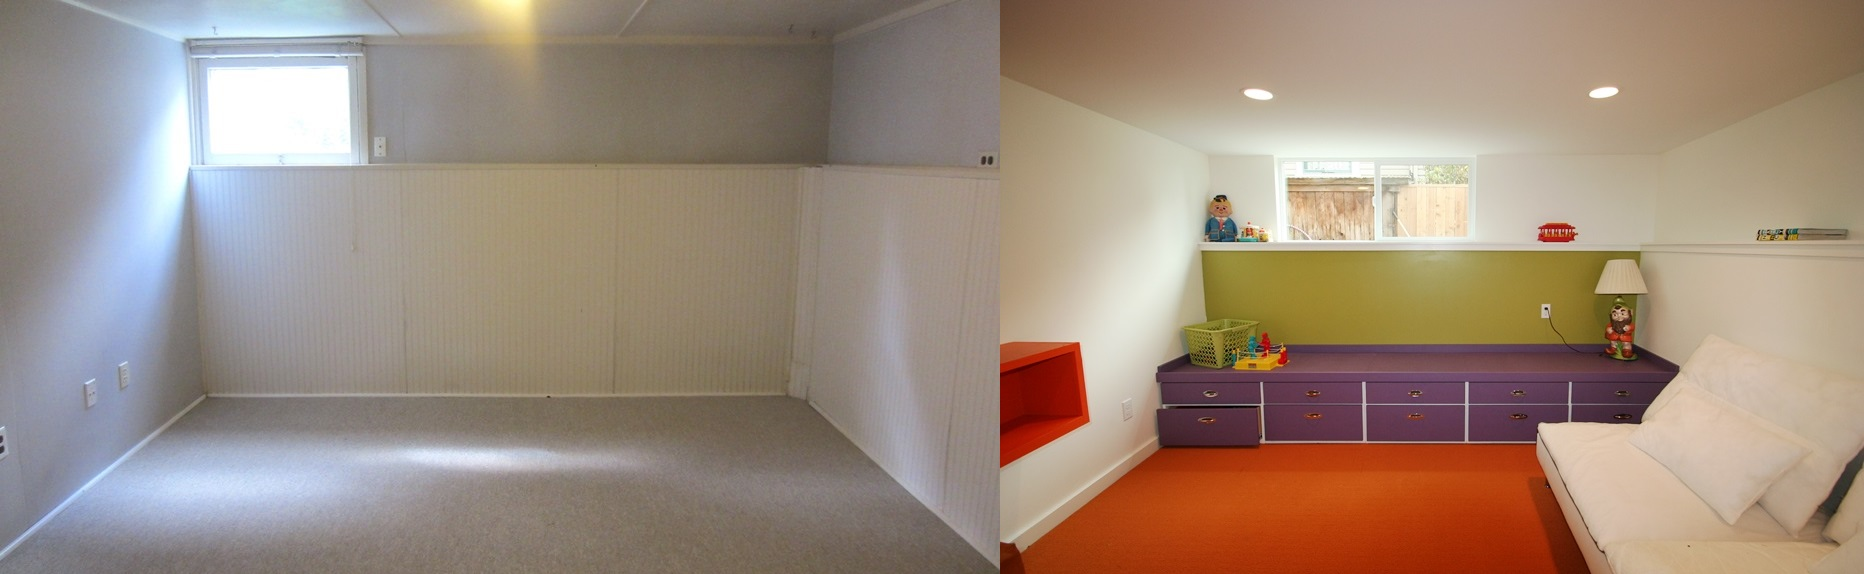 before___after_basement_1.jpg